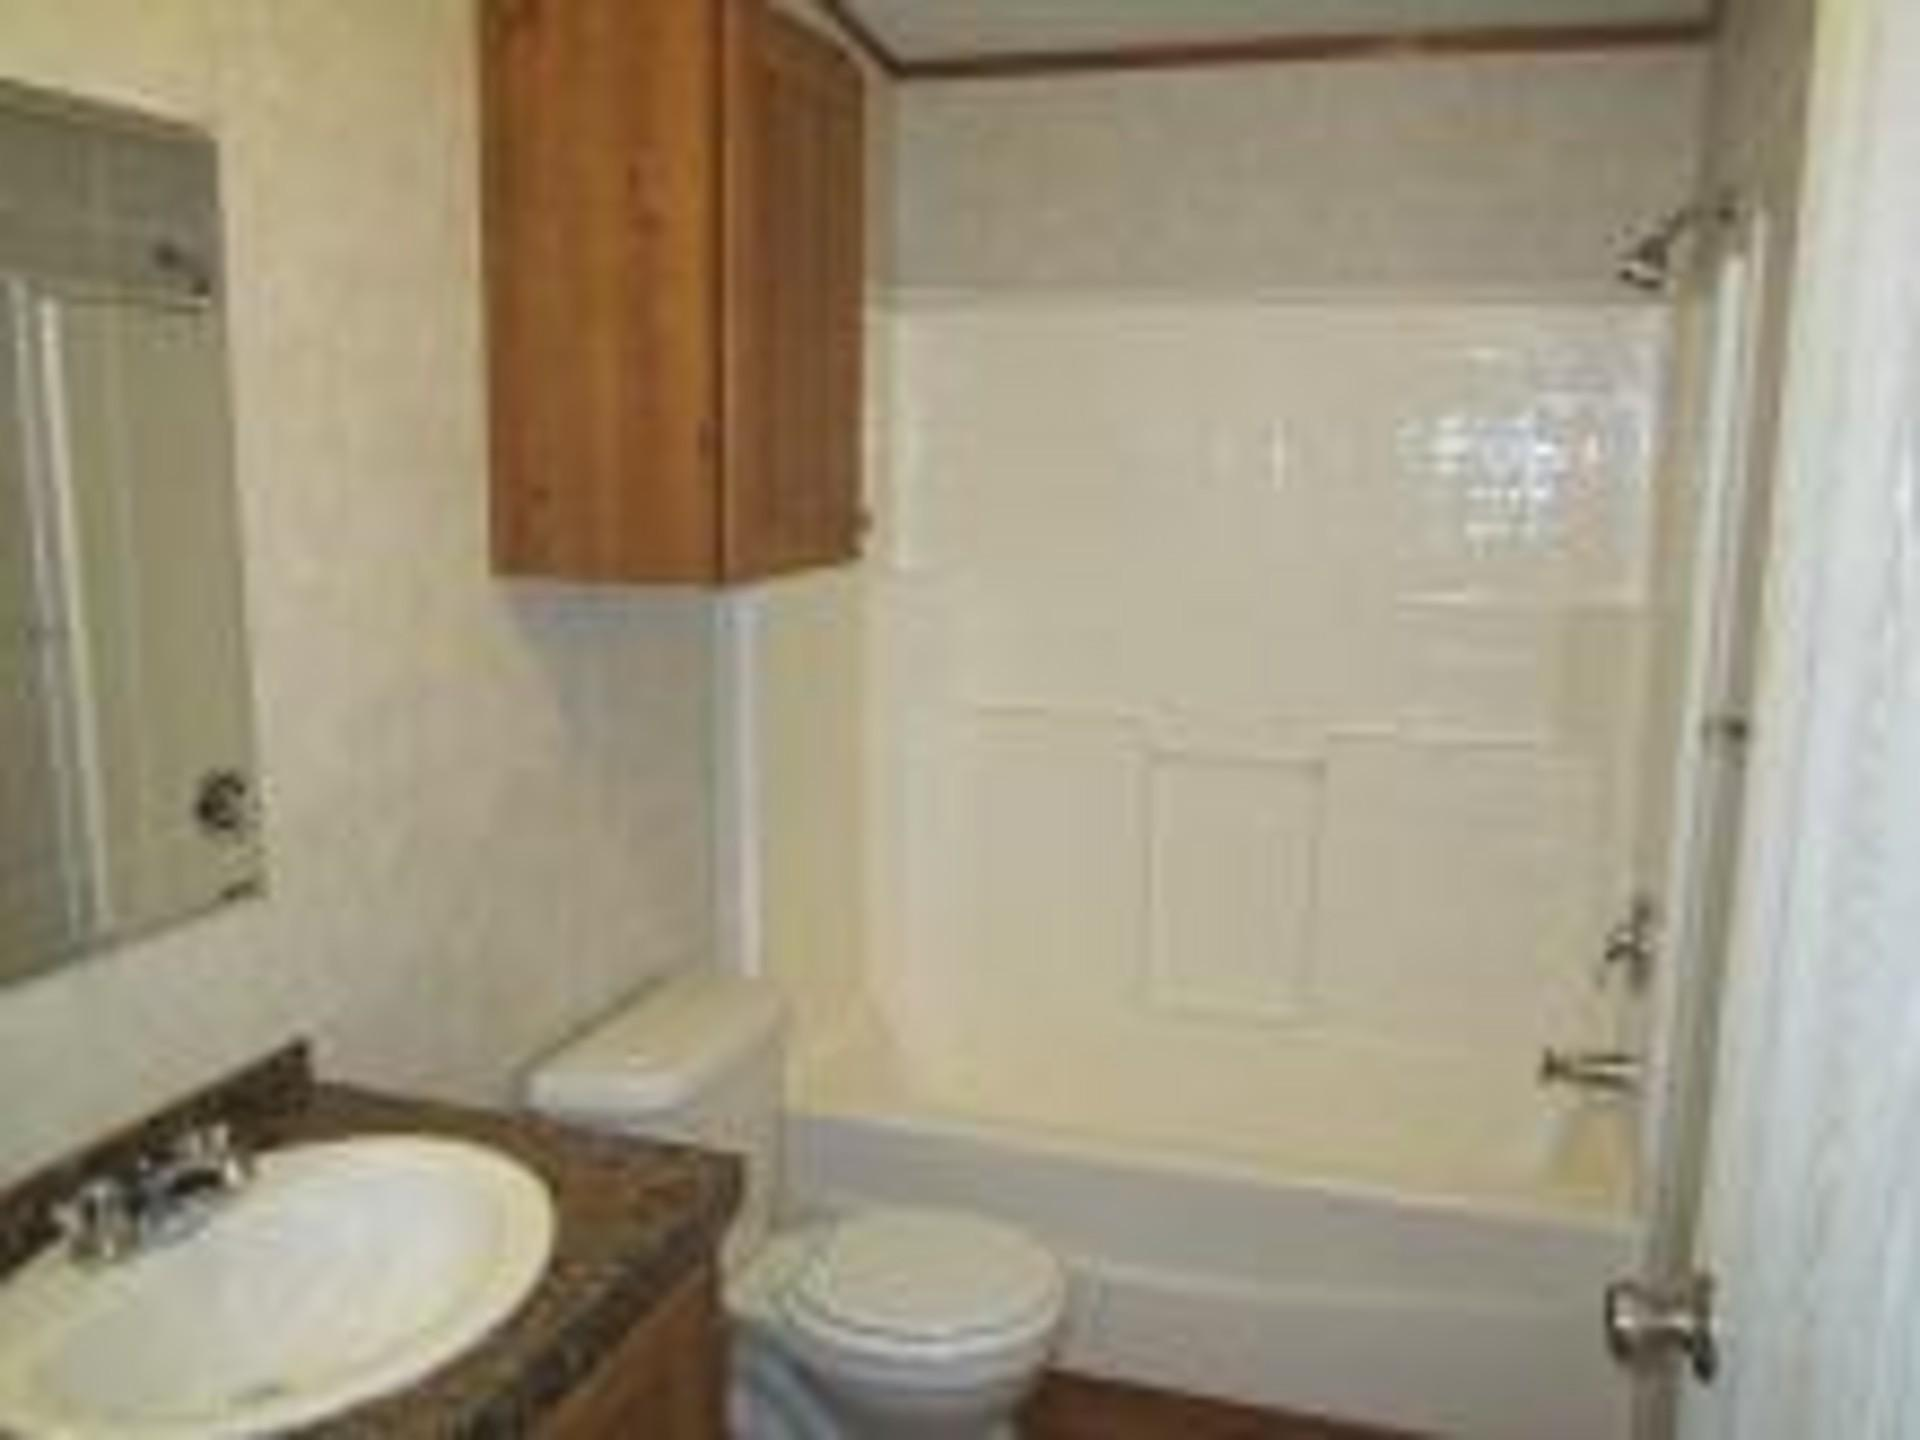 Super nice double wide home can be yours for $37,995! Call to view!